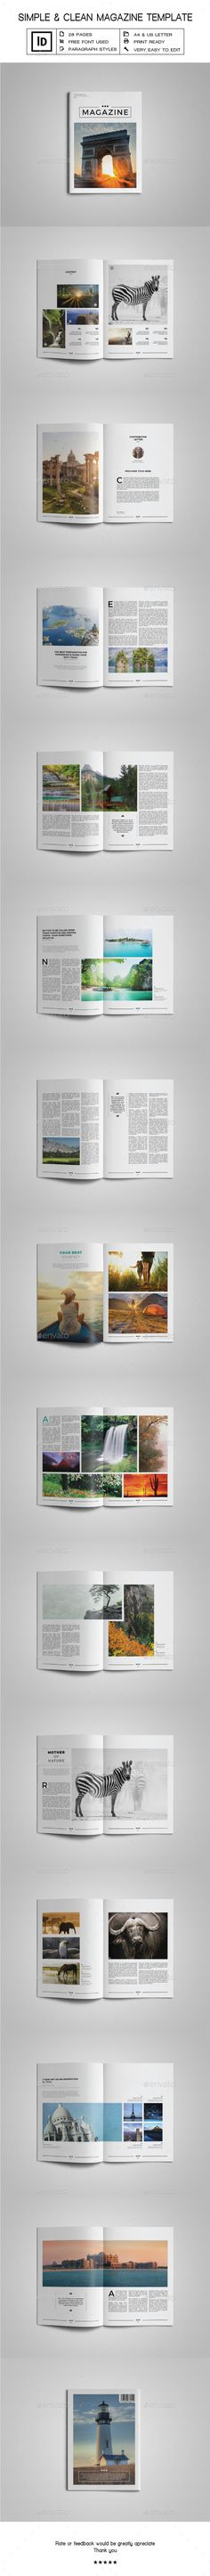 Simple & Clean Magazine Template V — InDesign Template #creative magazine #indesign template • Download ➝ https://graphicriver.net/item/simple-clean-magazine-template-v/18029946?ref=pxcr